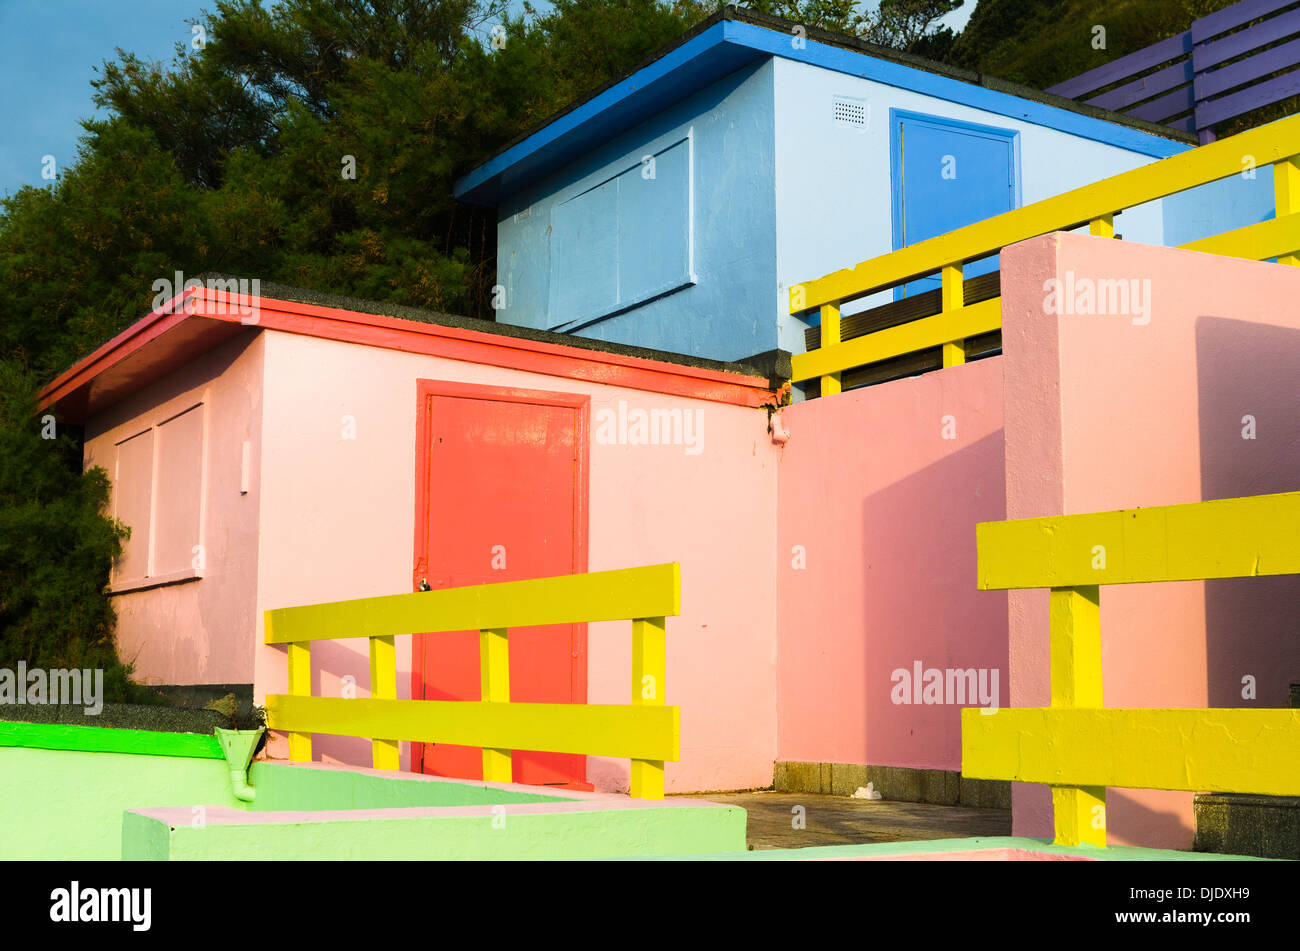 Colourful beach chalets - Stock Image